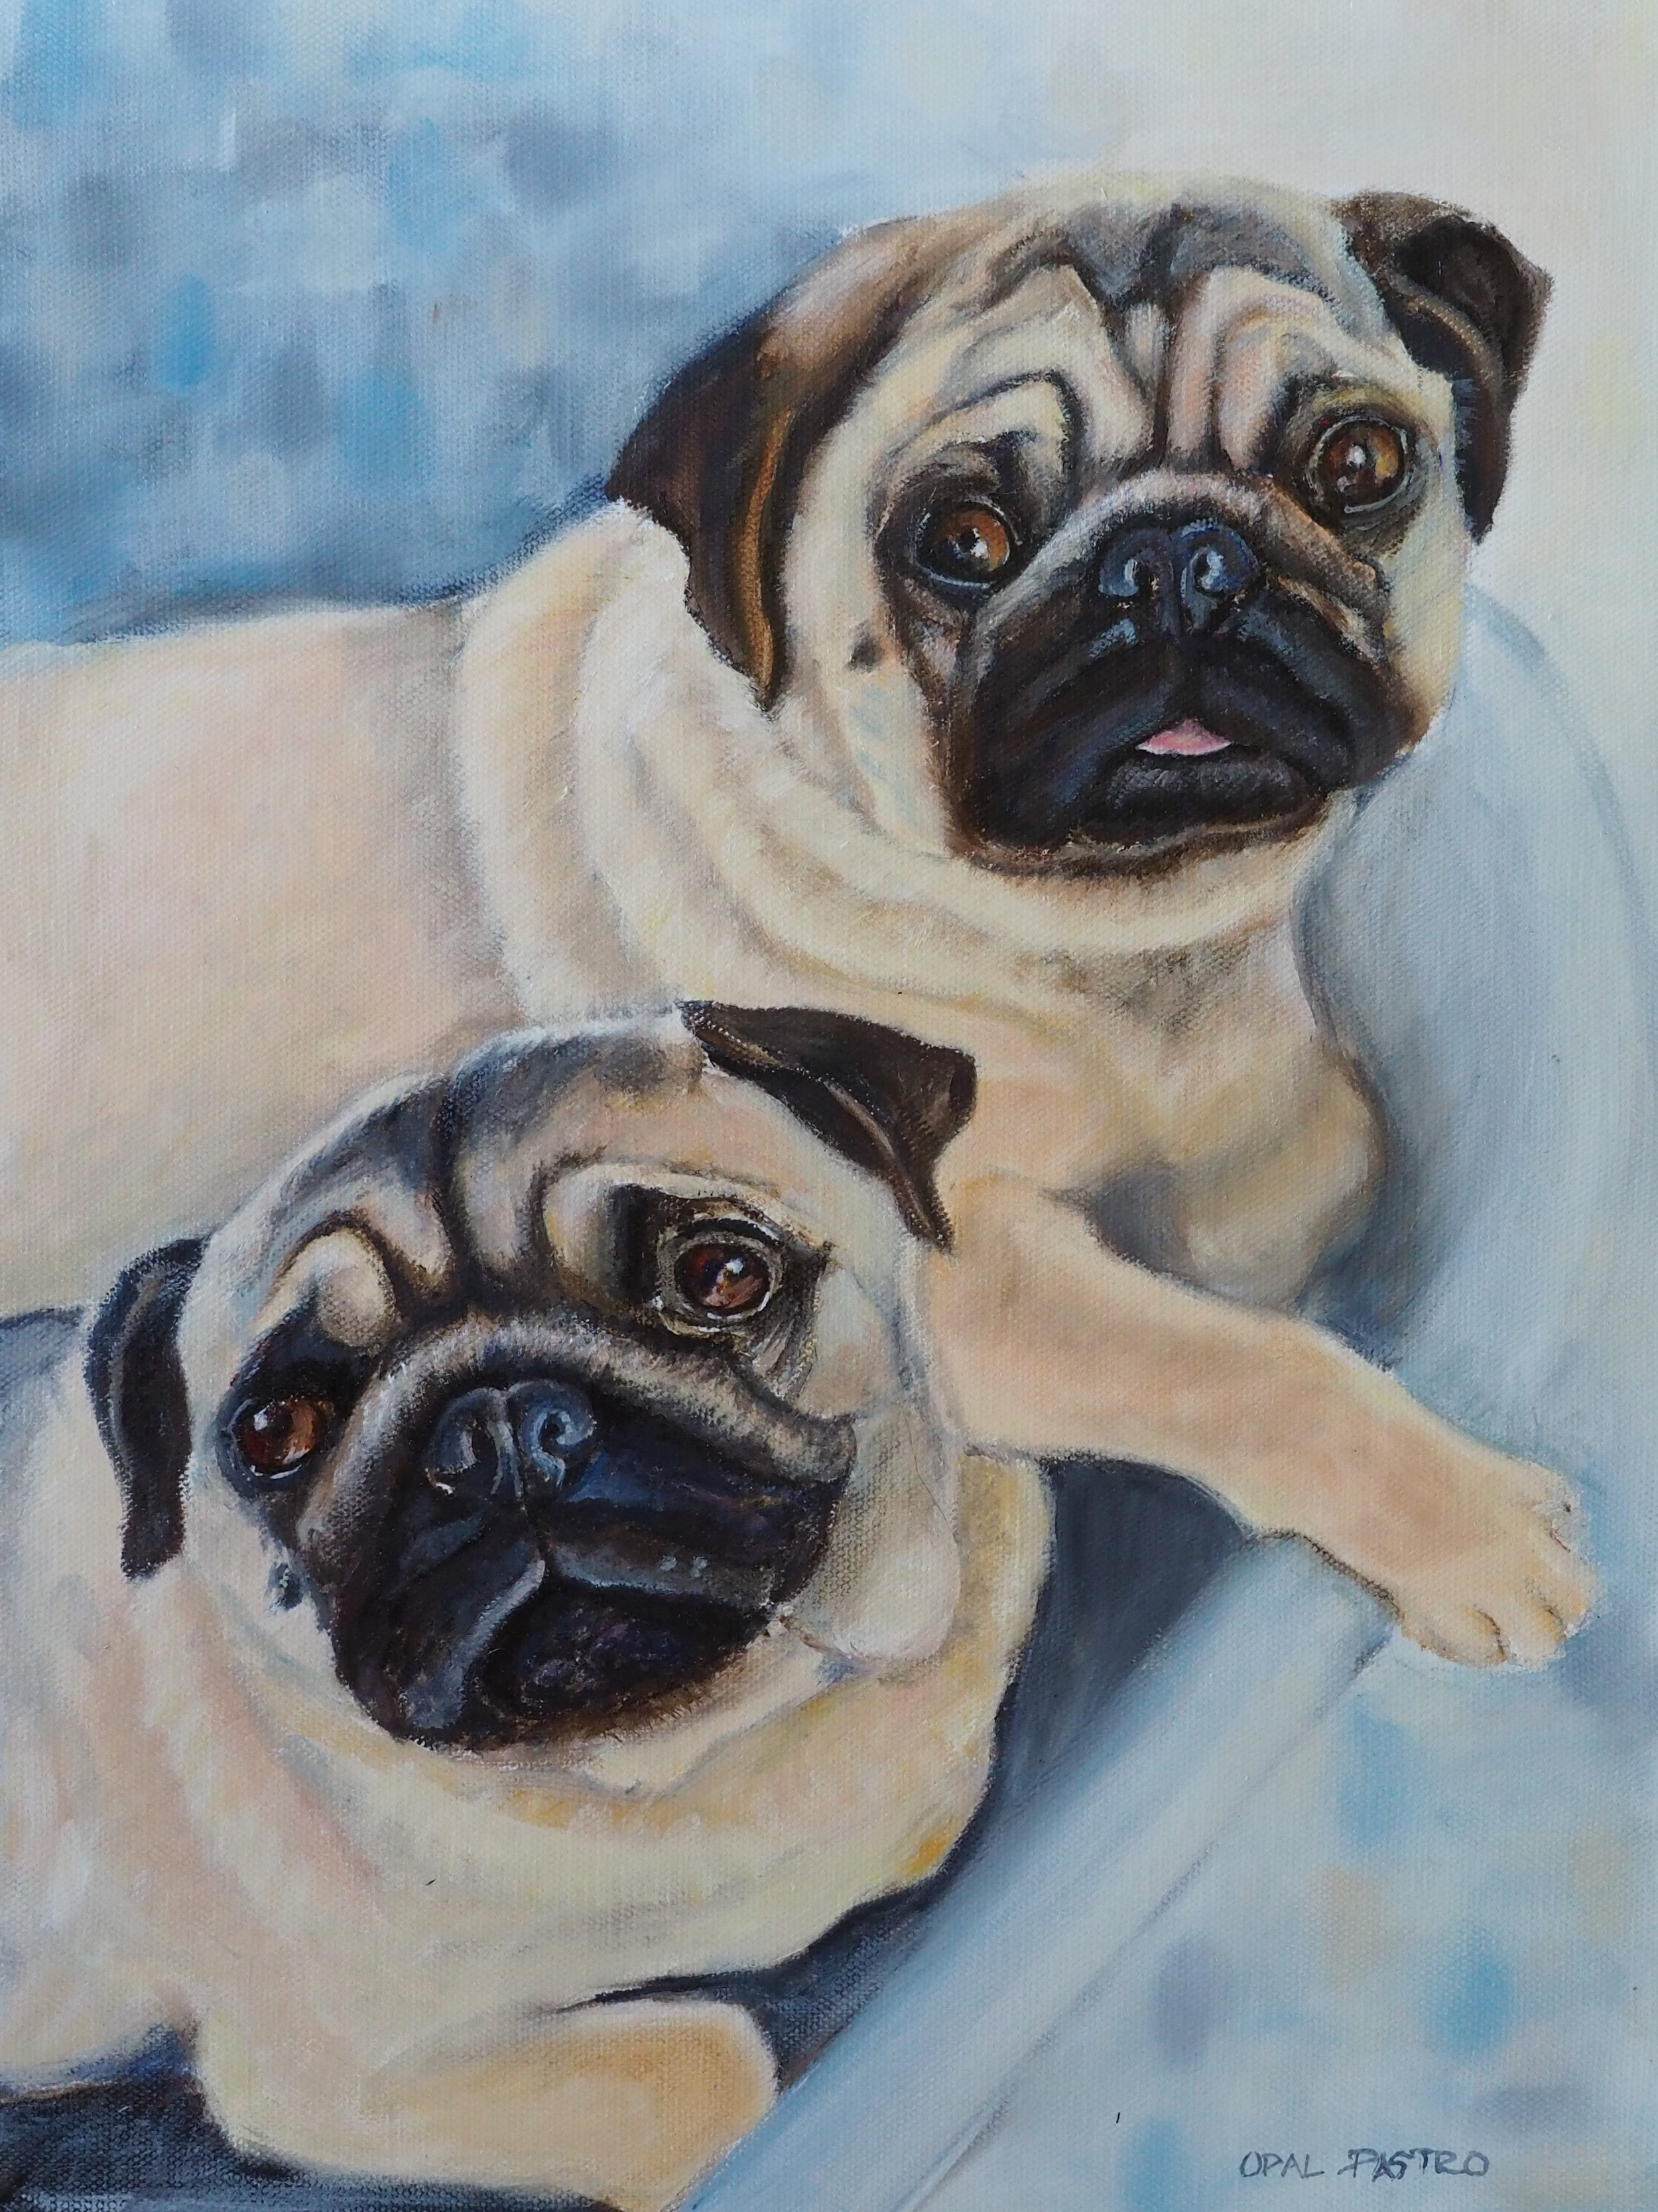 DOG PAINTING OF PUG SIBLINGS IN BLUE TUB BY OPAL PASTRO ART